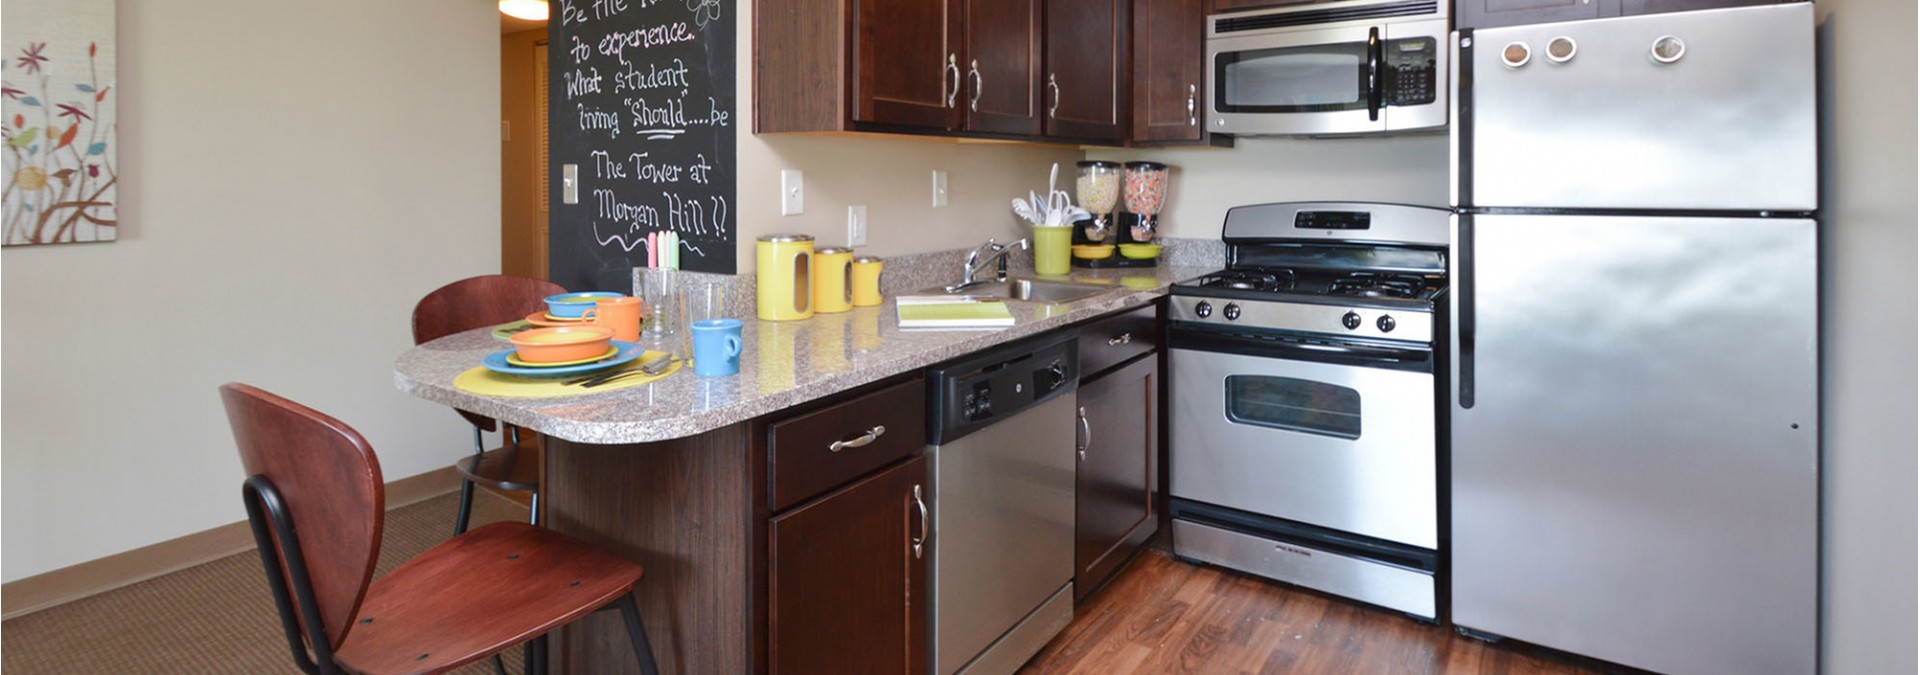 Contact Us The Tower At Morgan Hill Apartment Homes For Rent In